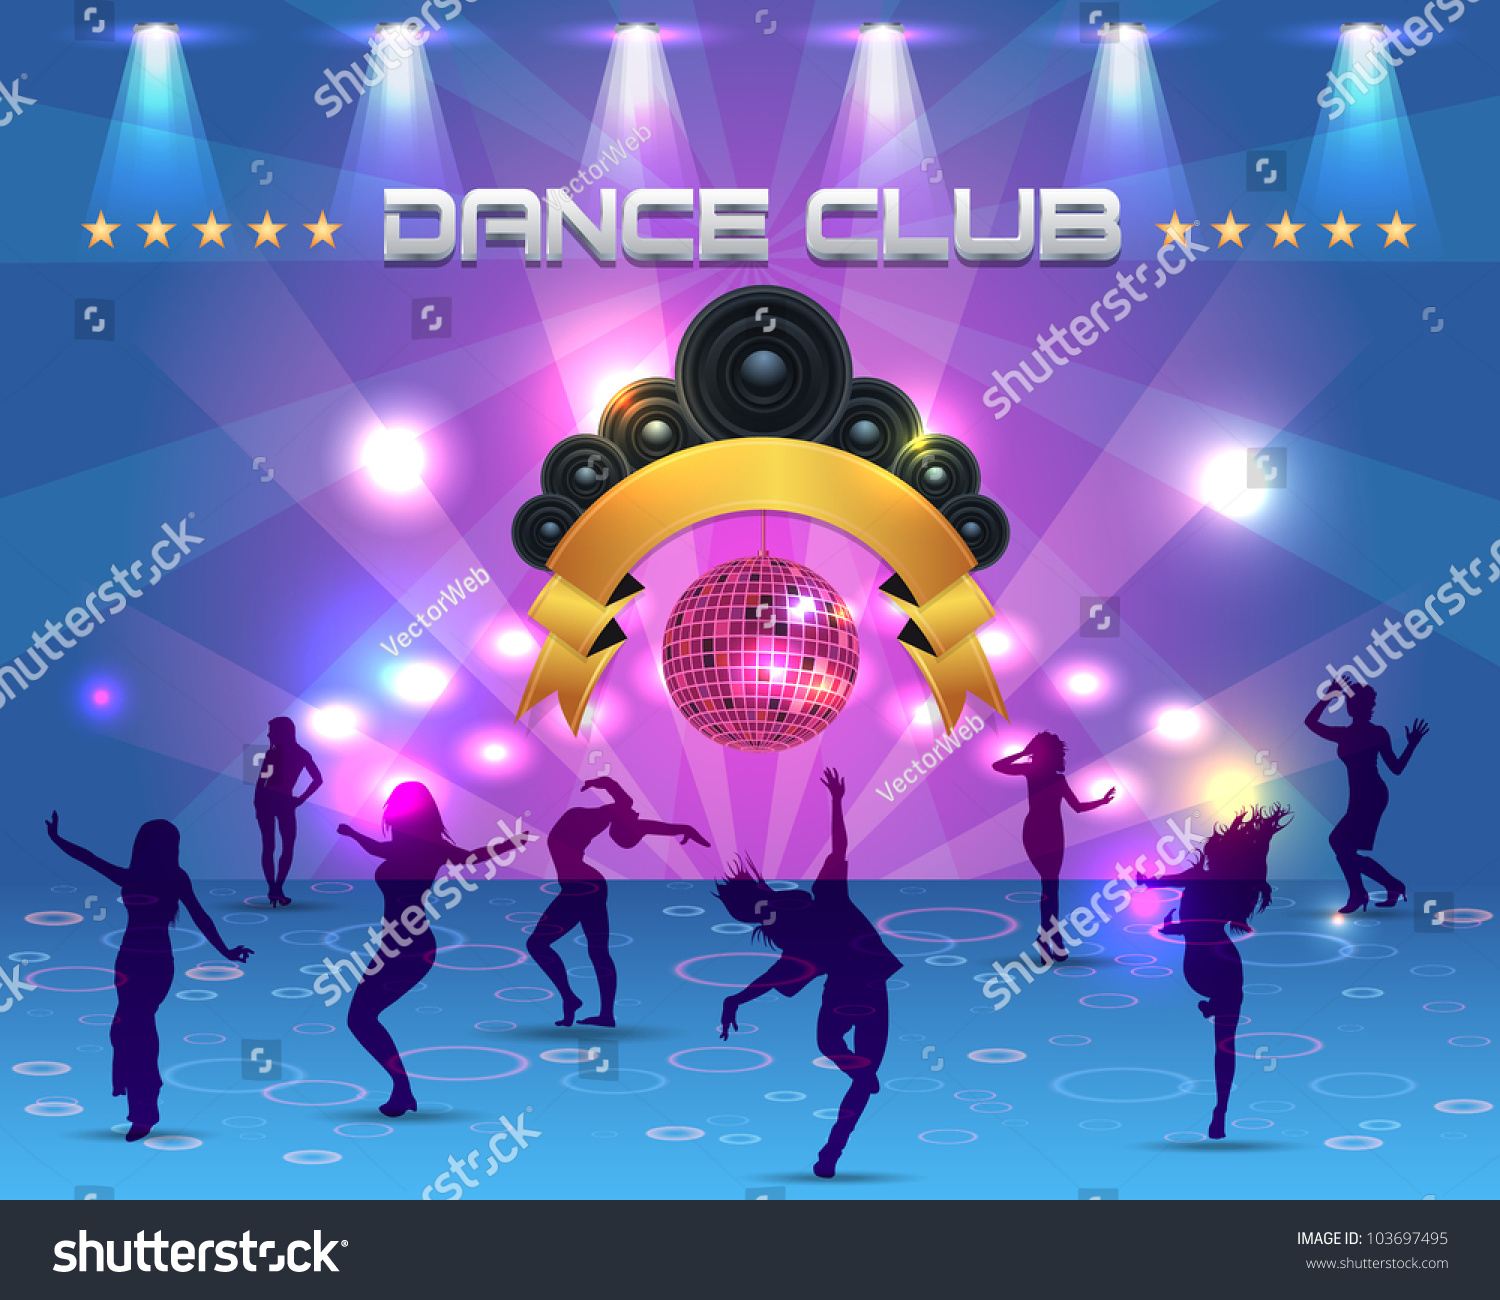 Dance Party Banner Background Flyer Templates Stock Vector Royalty Free 103697495